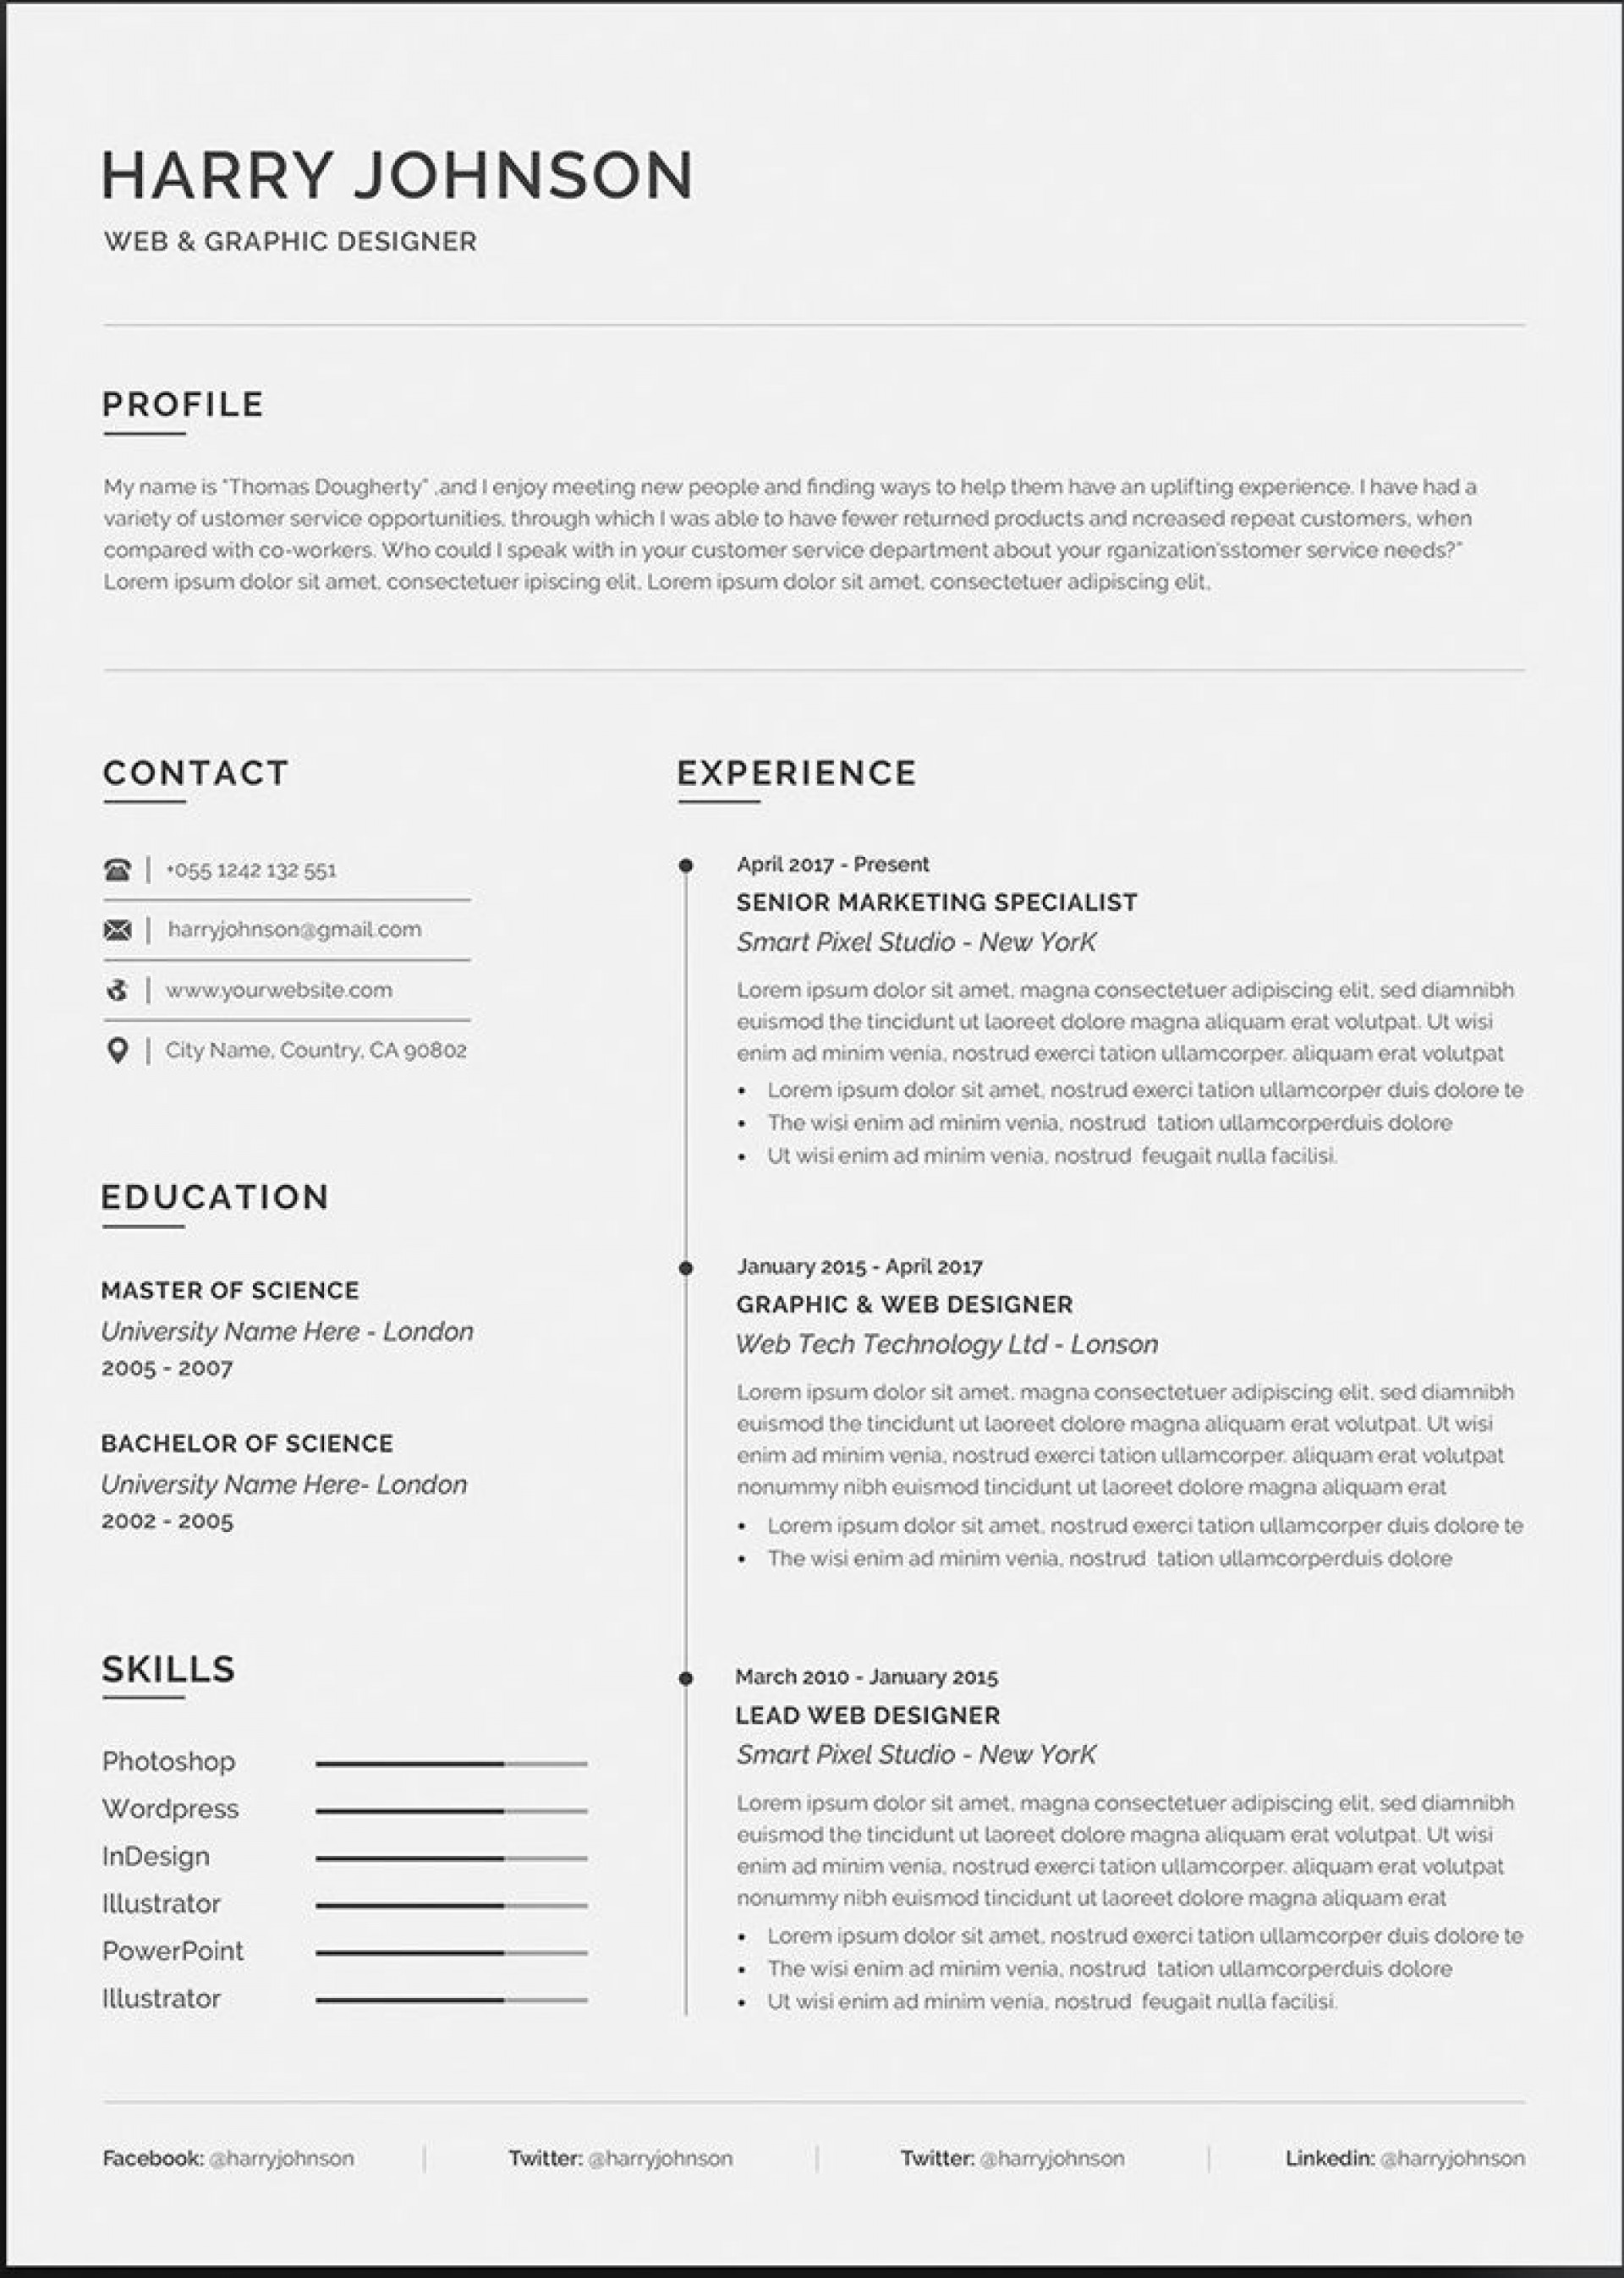 005 Marvelou Create Your Own Resume Template In Word Design 1920